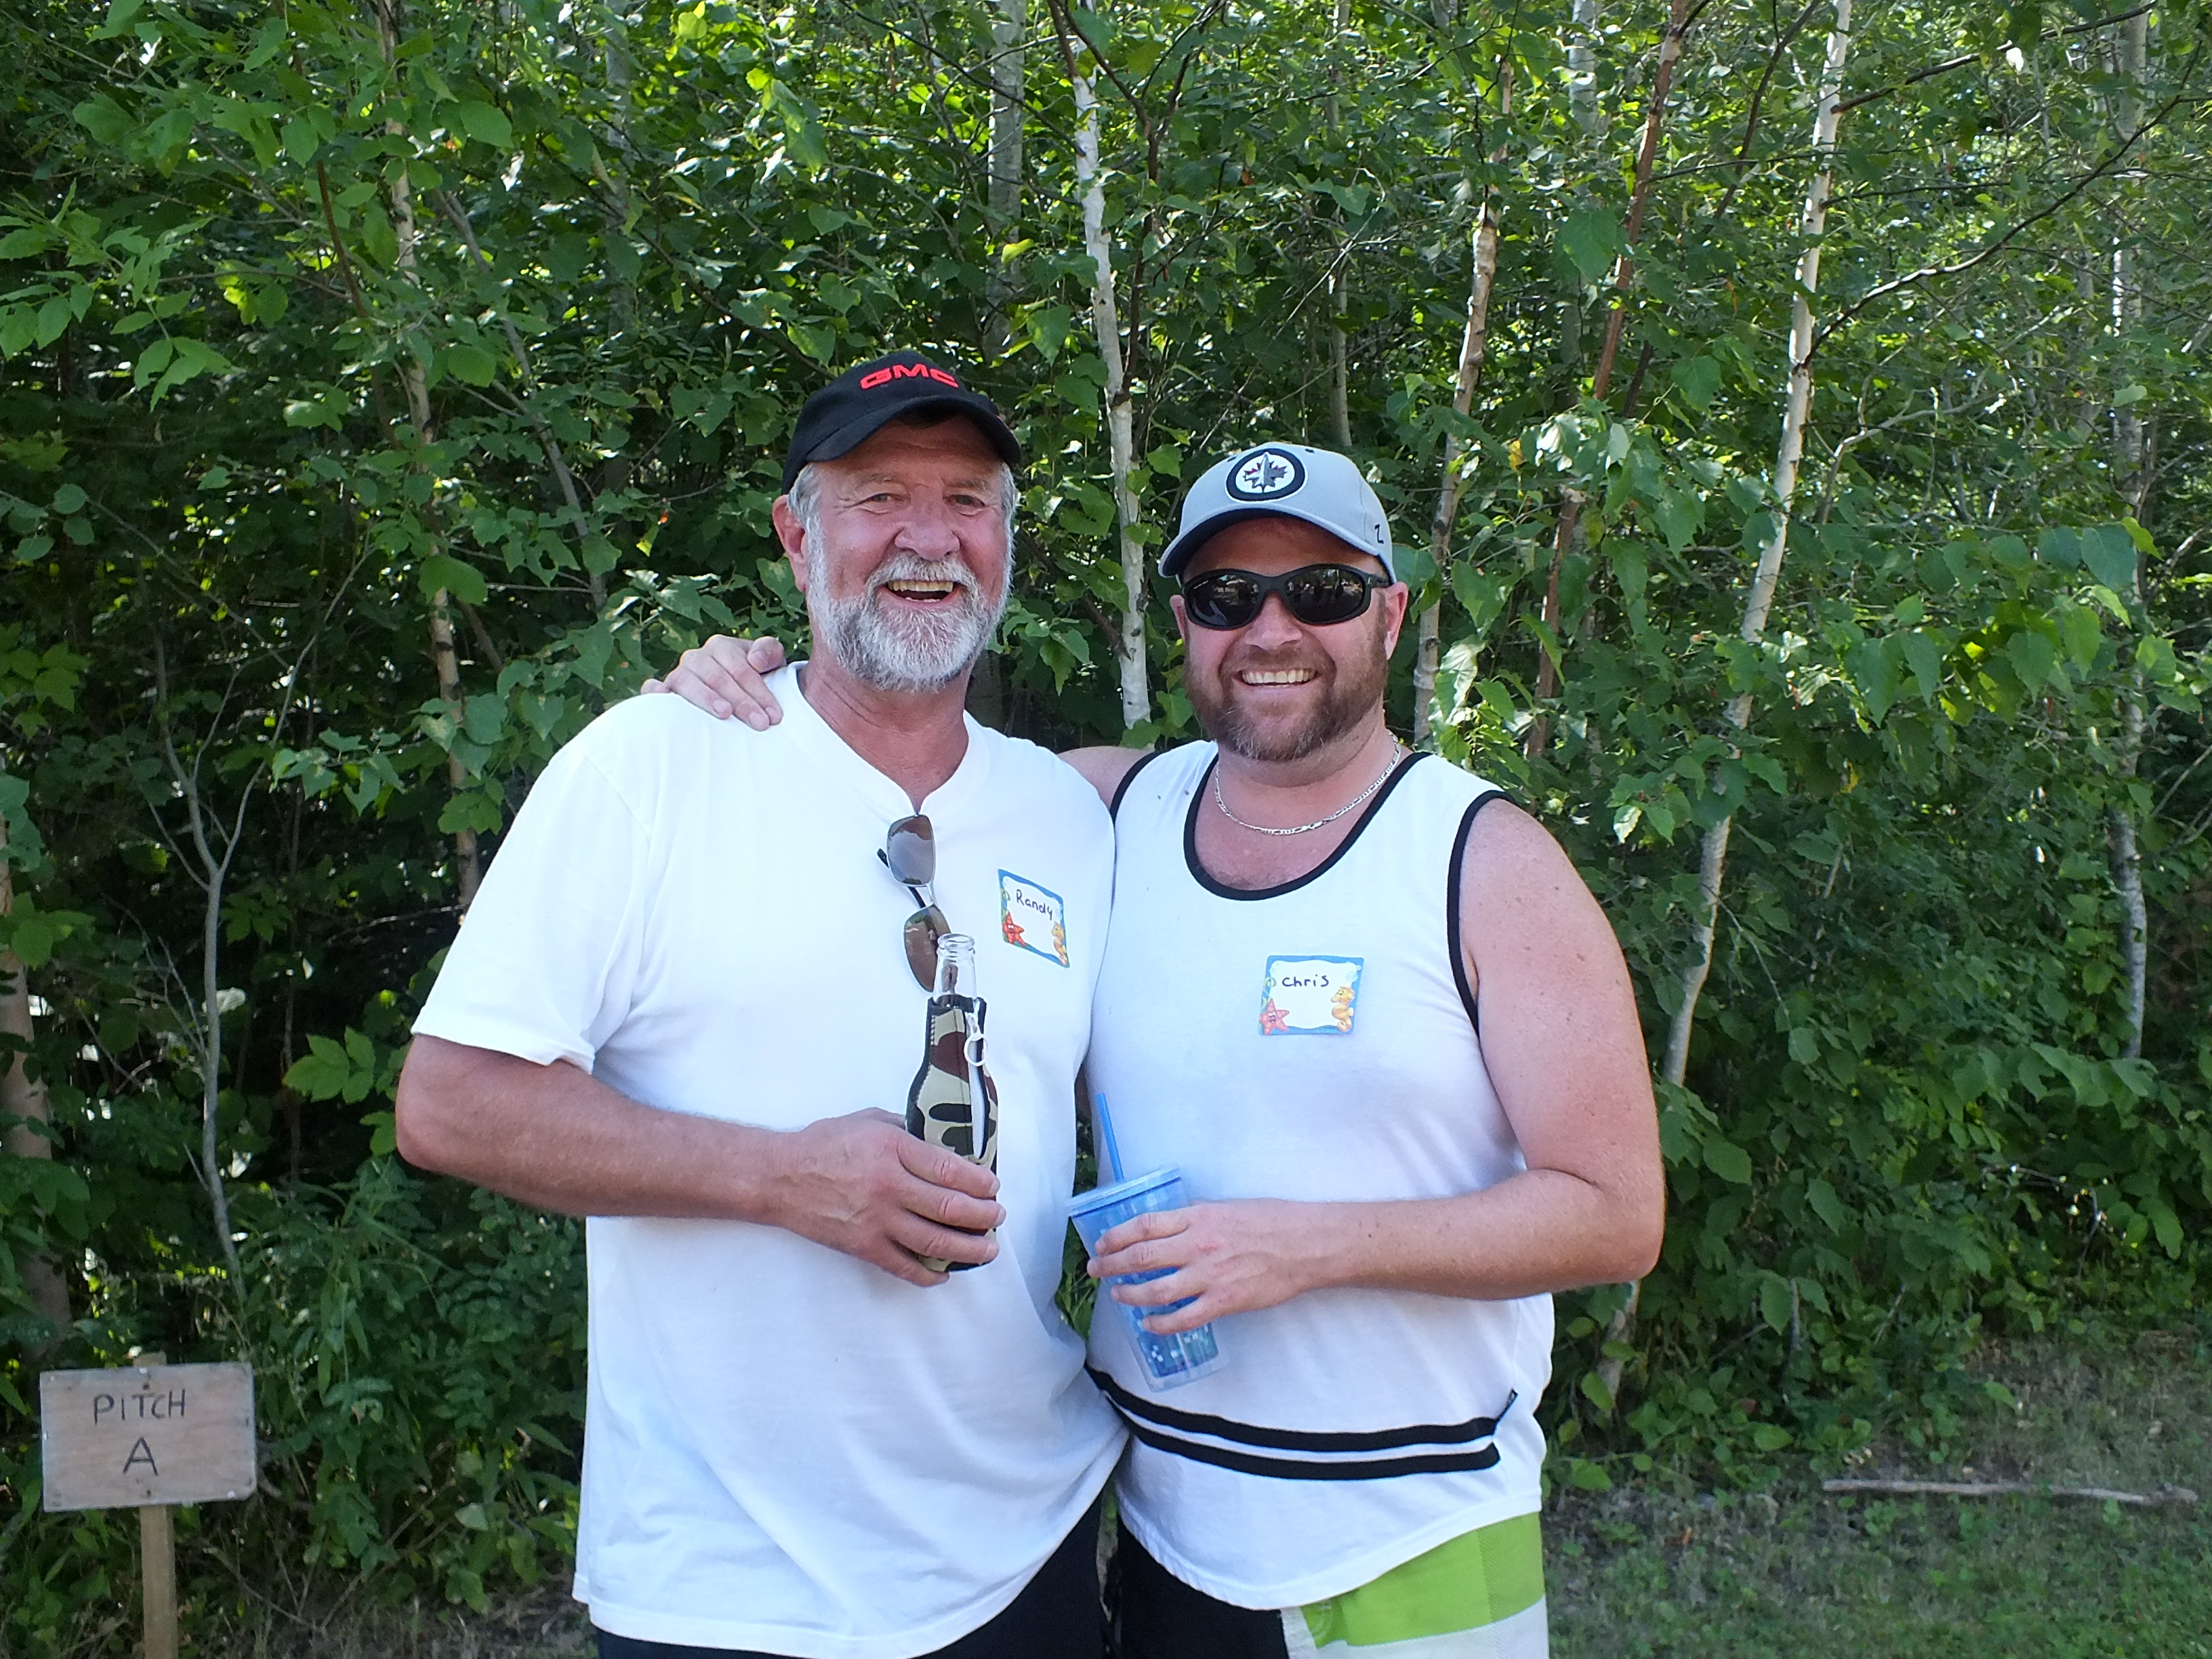 2016 horseshoe runners up - Randy & Chris